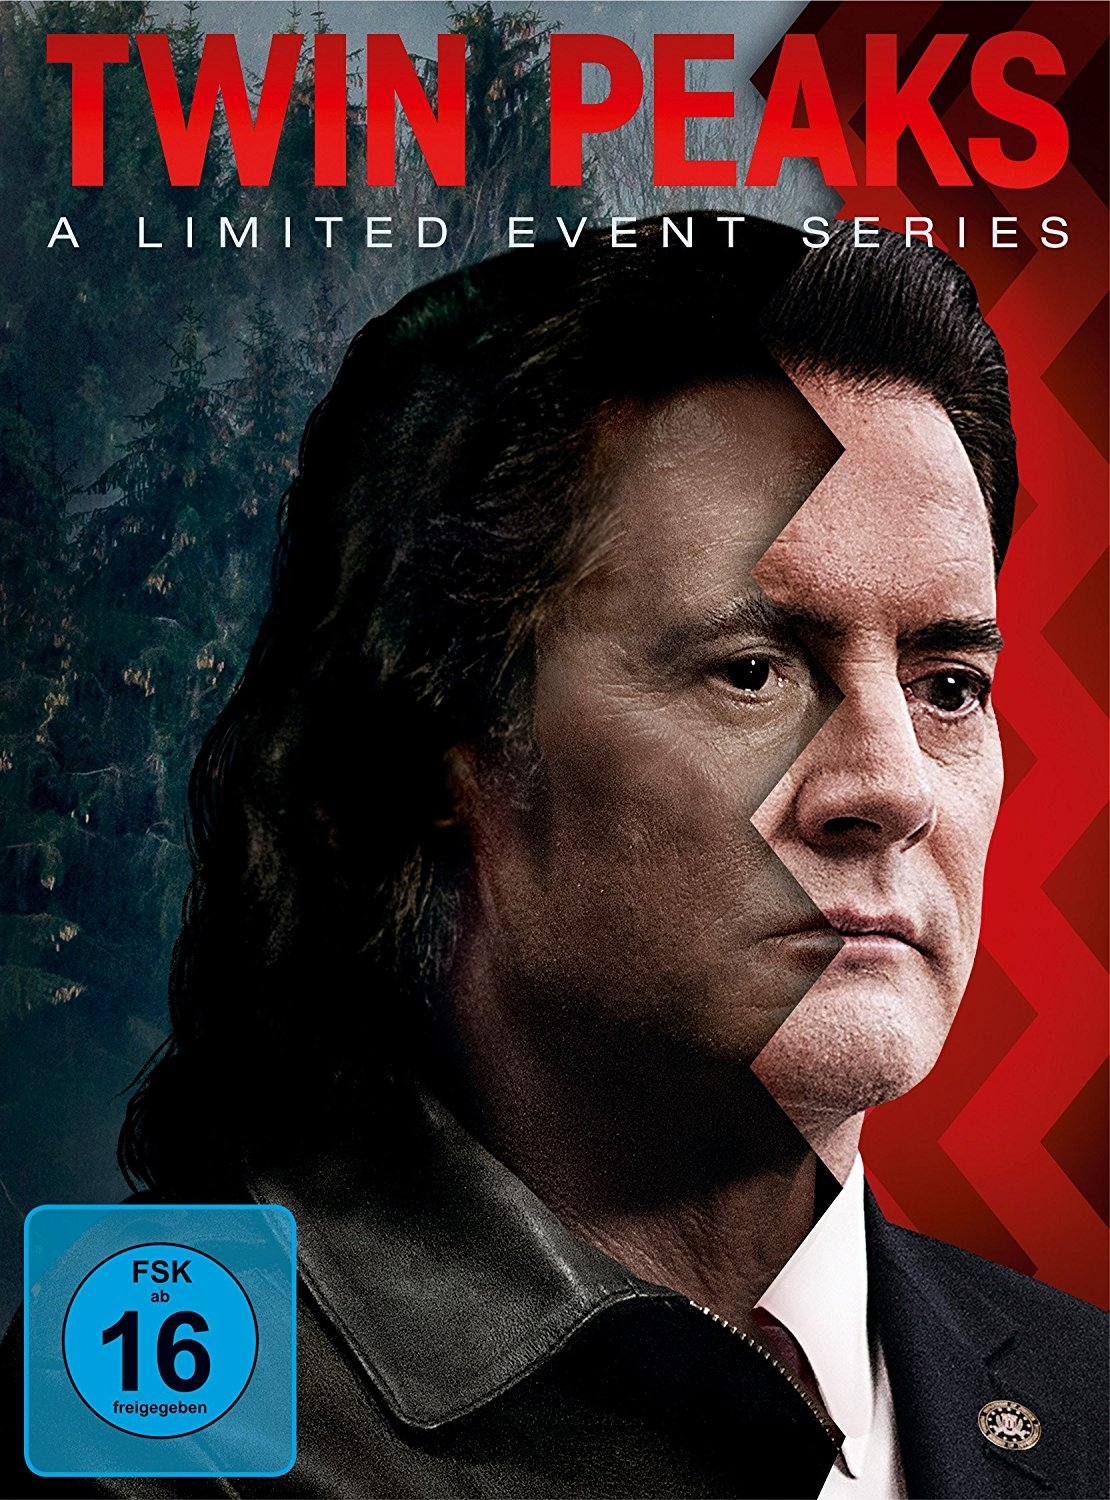 dvd 03 18 Twin Peaks Series new